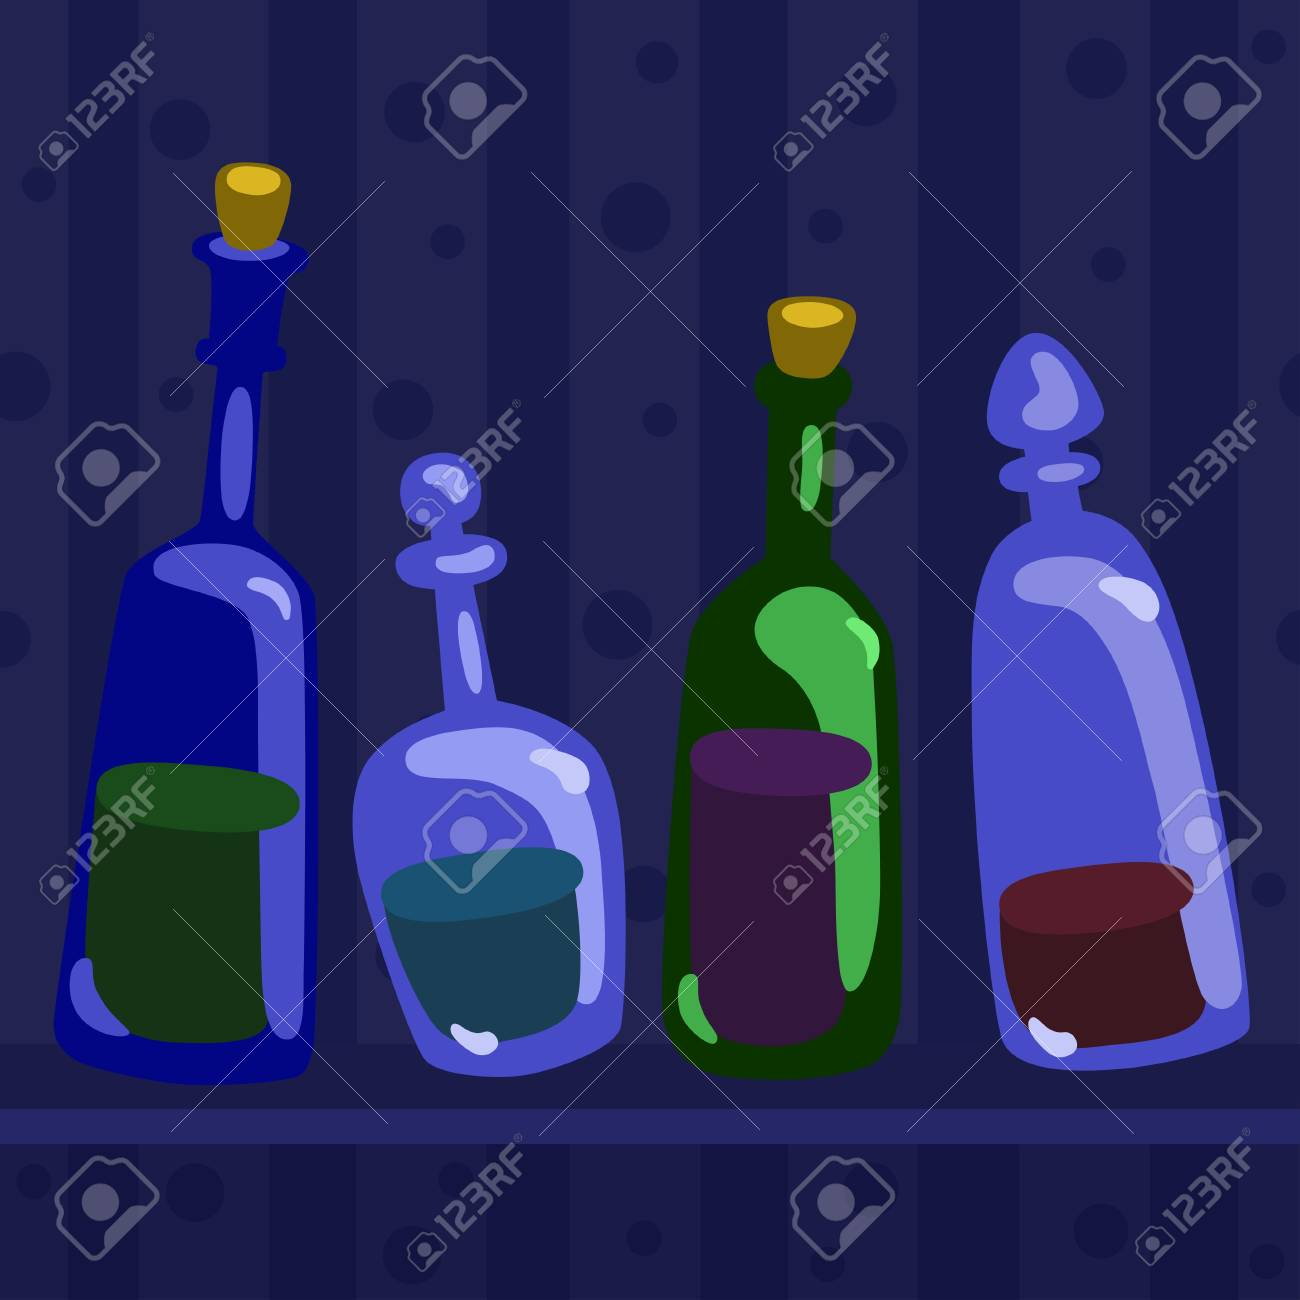 Still life with bottles - vector background illustration Stock Vector - 18119926